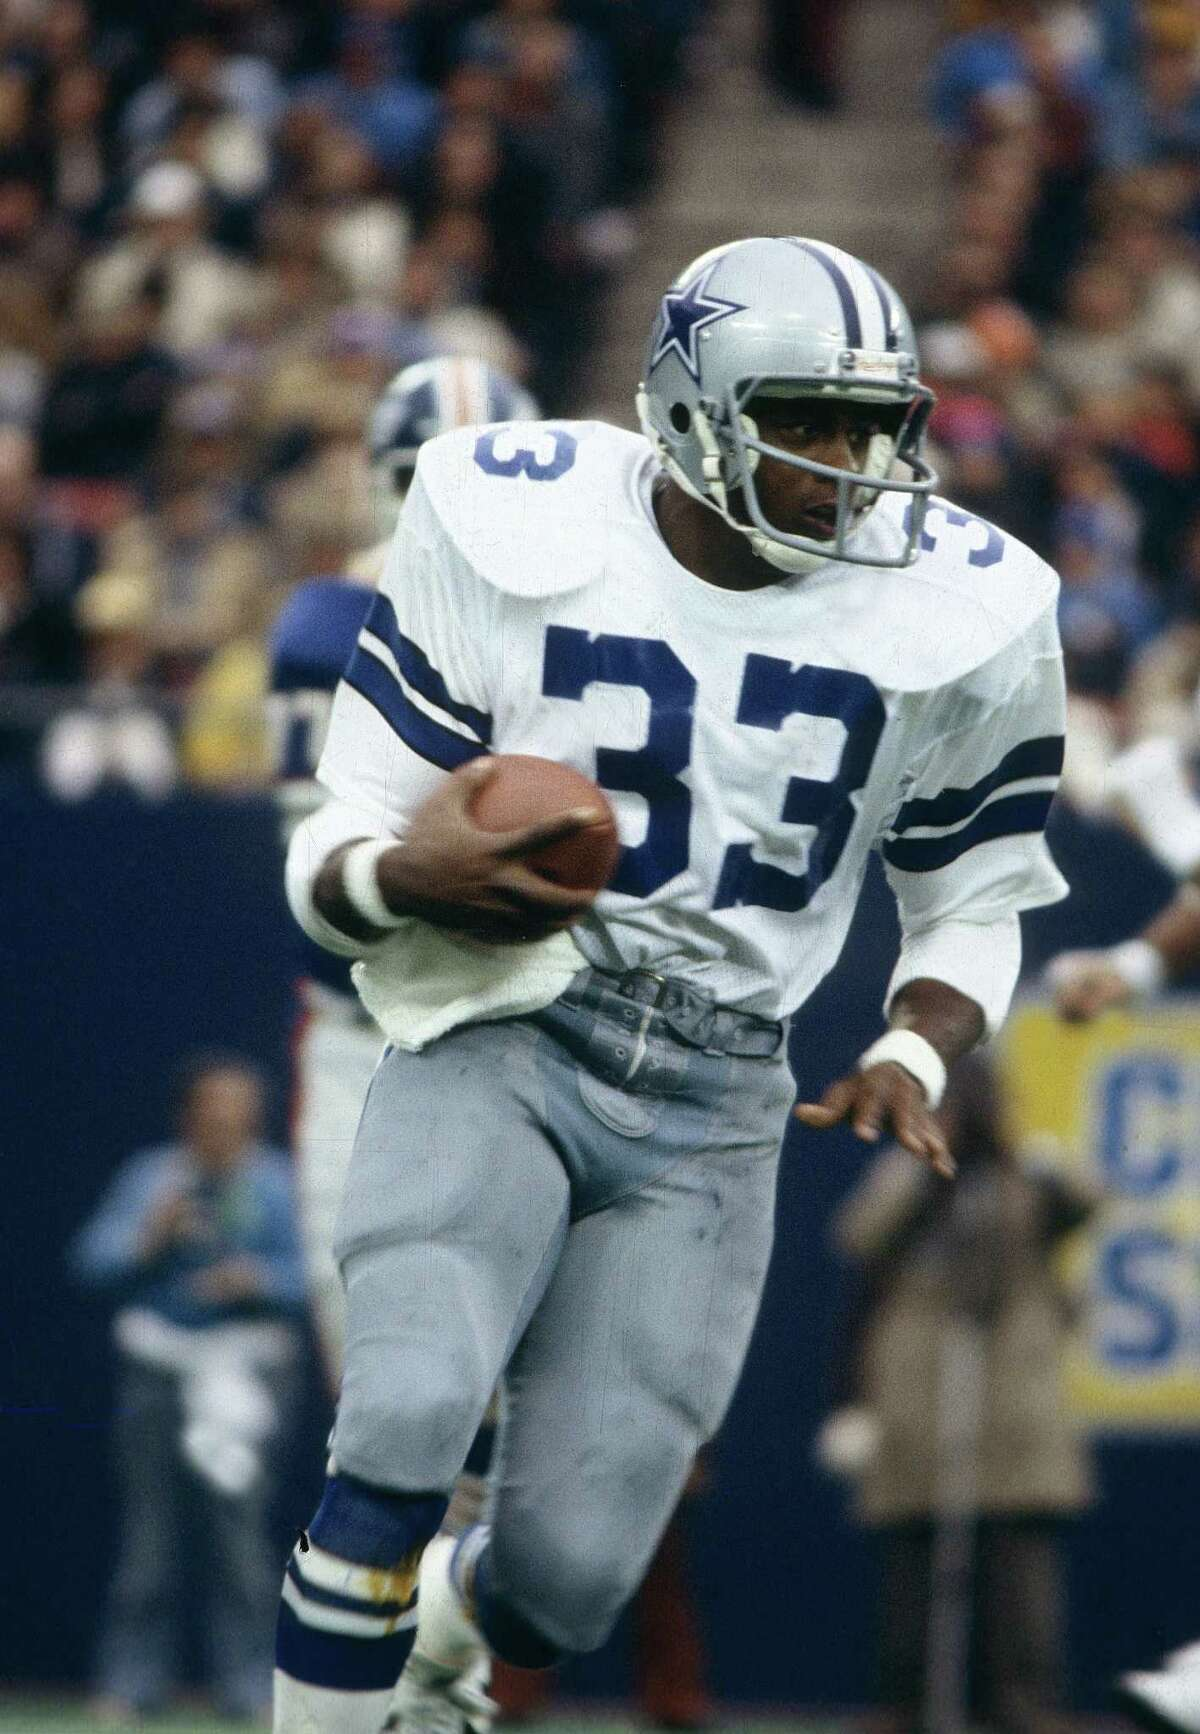 CIRCA 1980's: Running back Tony Dorsett #33 of the Dallas Cowboys carries the ball during a circa 1980's NFL game against the New York Giants at Giant Stadium in East Rutherford, New Jersey. Dorsett played for the Cowboys from 1977-87.